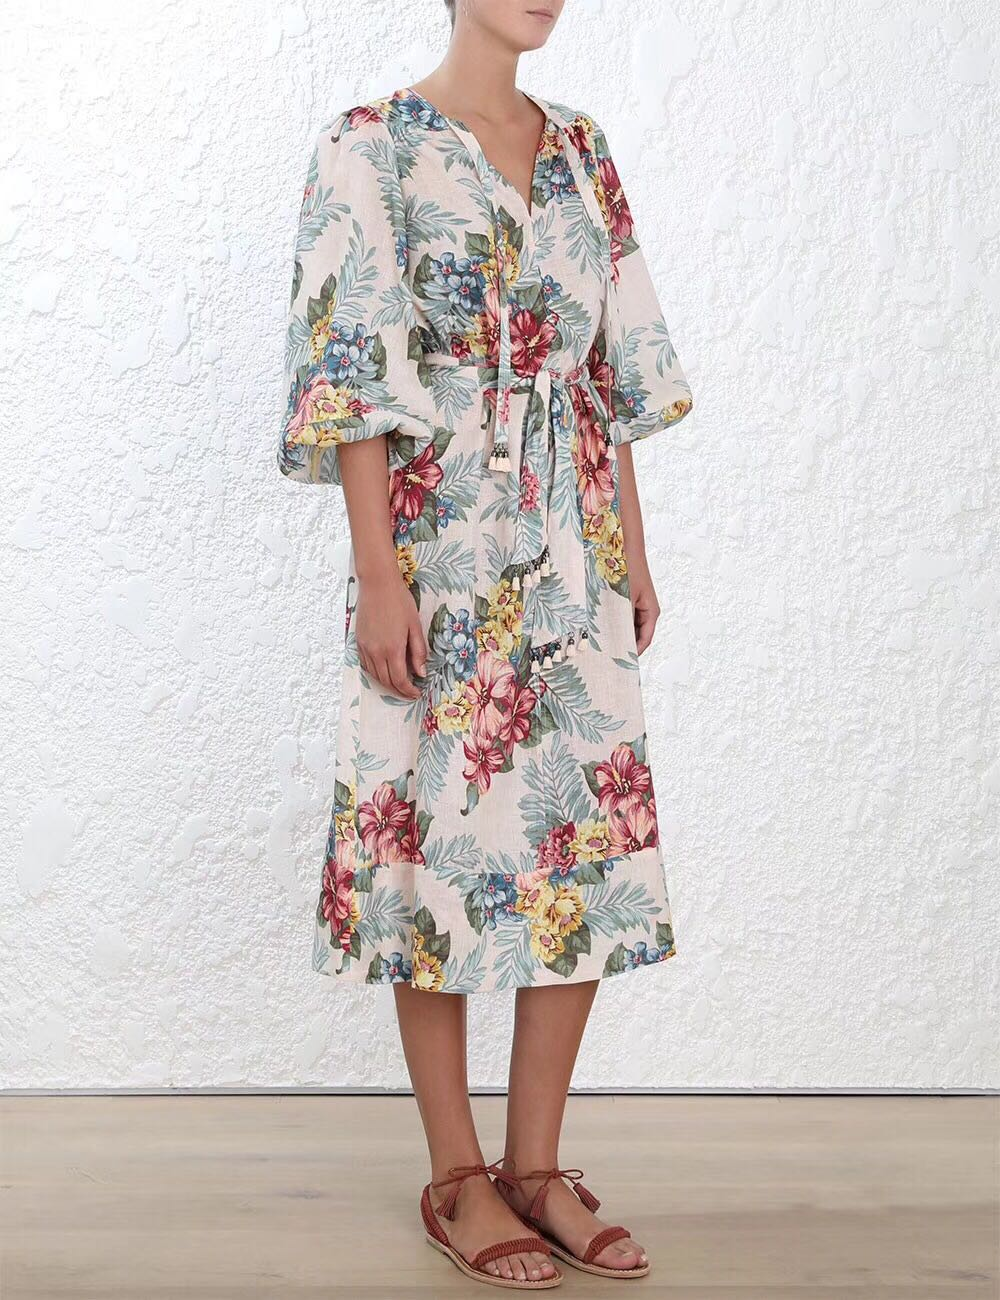 Midi As Linge Shirtdress Longues taille Cravate Glands Tie print Femmes Hibiscus Manches Fleurs Kali Floral Shown Robe Sqw6ZC